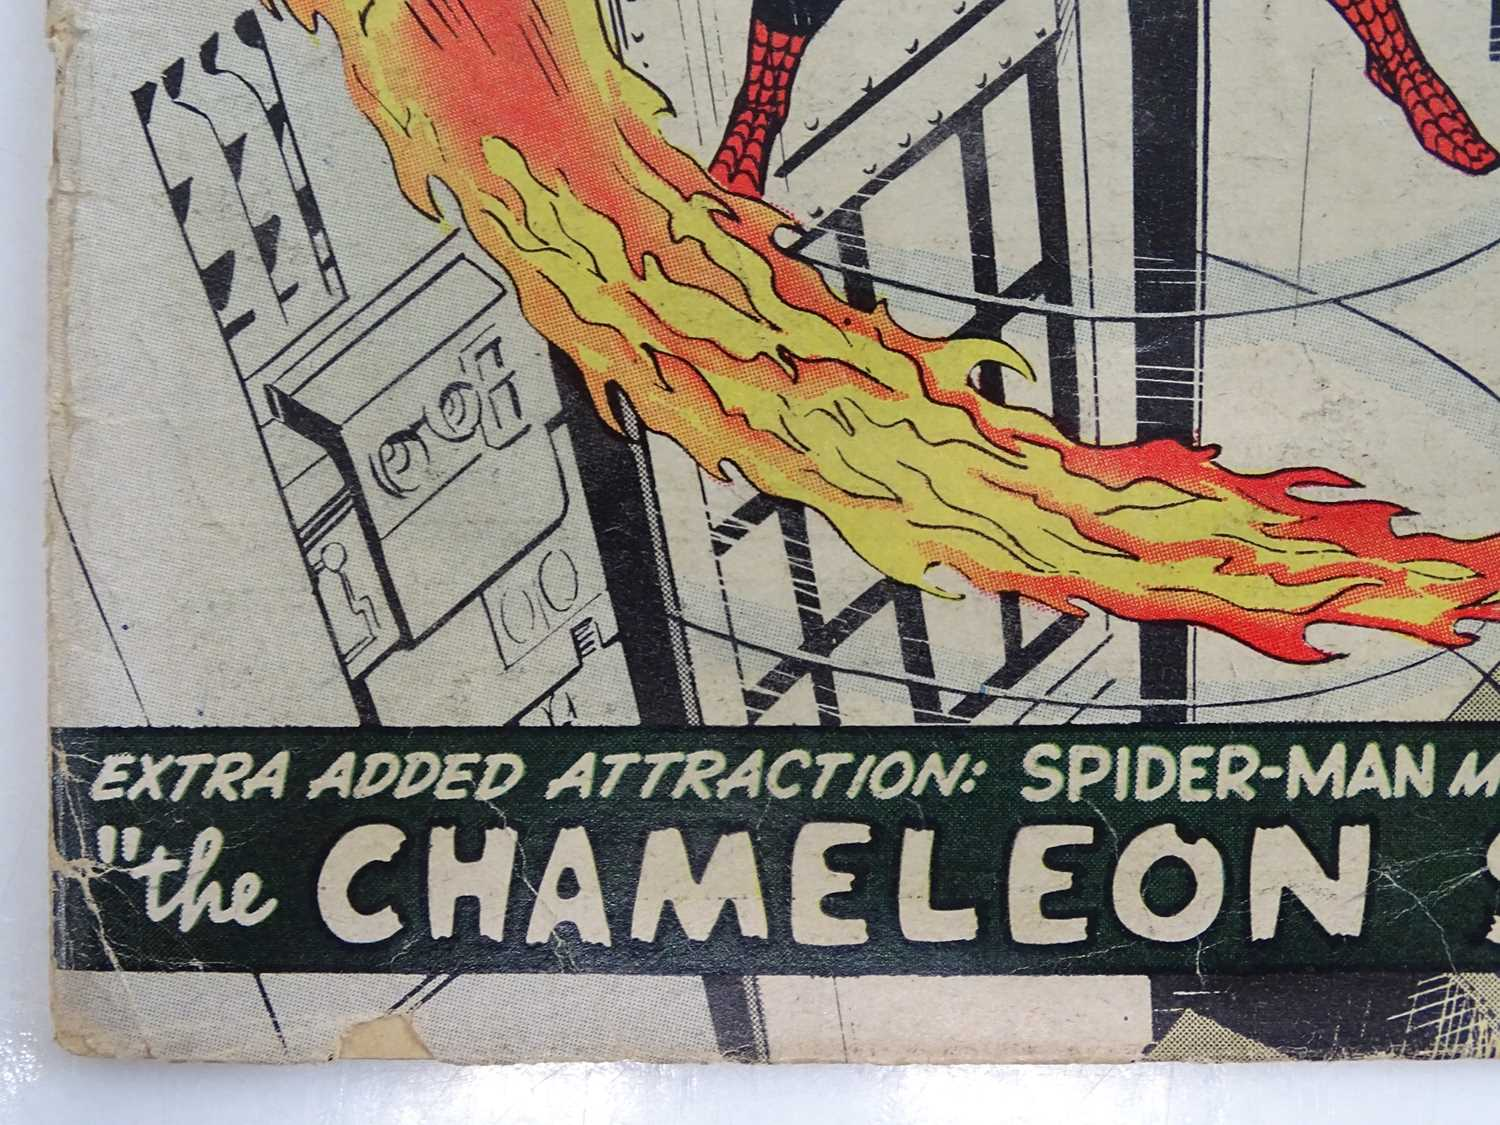 AMAZING SPIDER-MAN #1 - (1963 - MARVEL - UK Price Variant) - First appearance of Spider-Man un his - Image 4 of 27